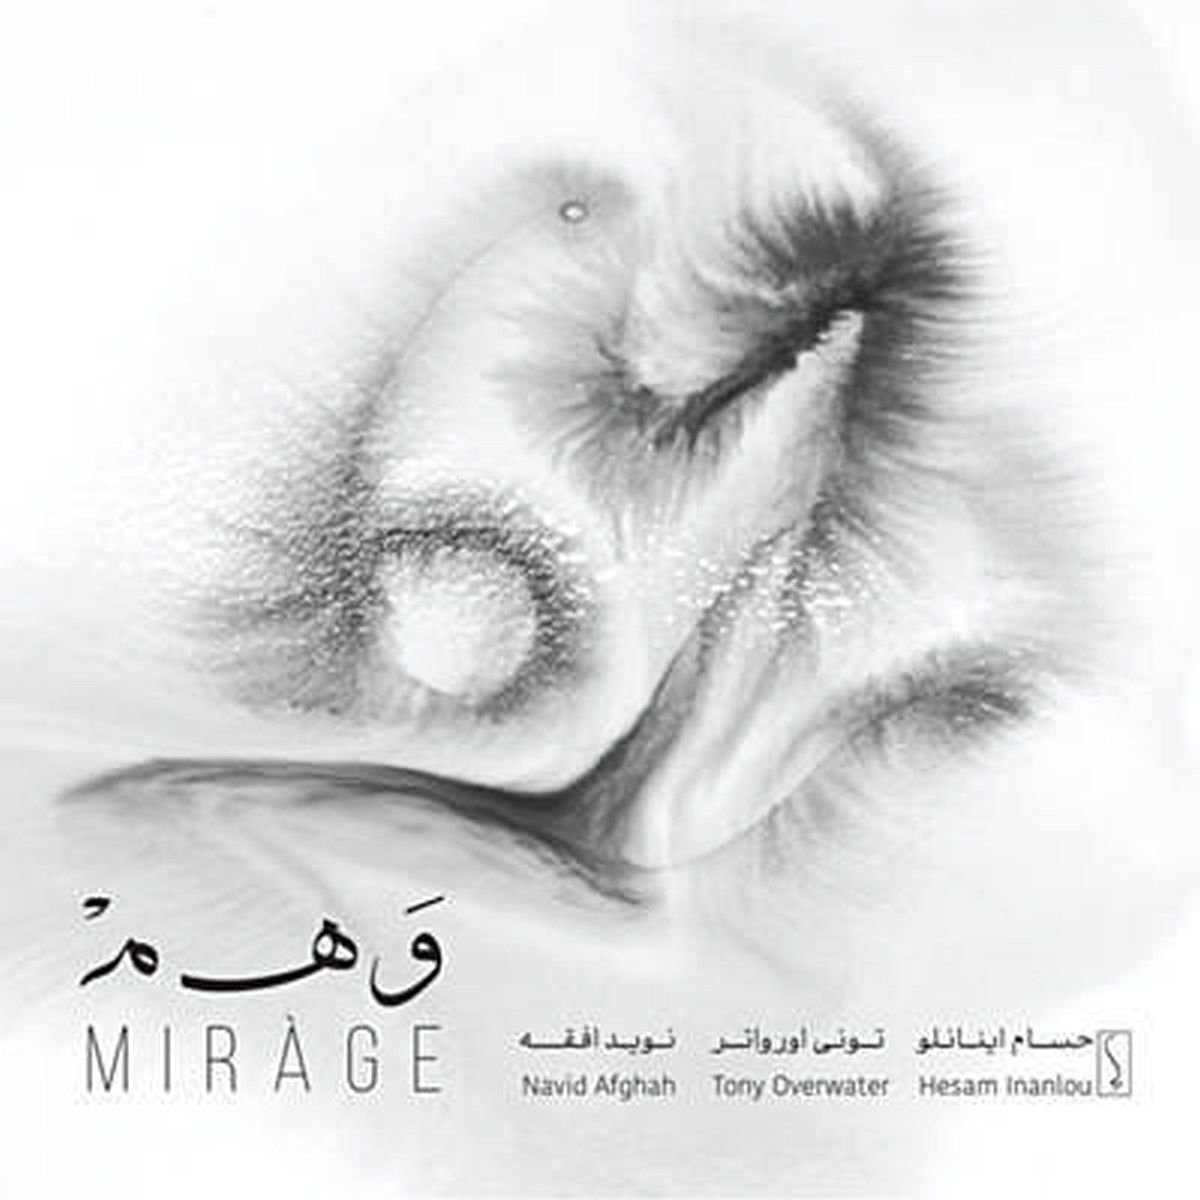 Discography: Mirage